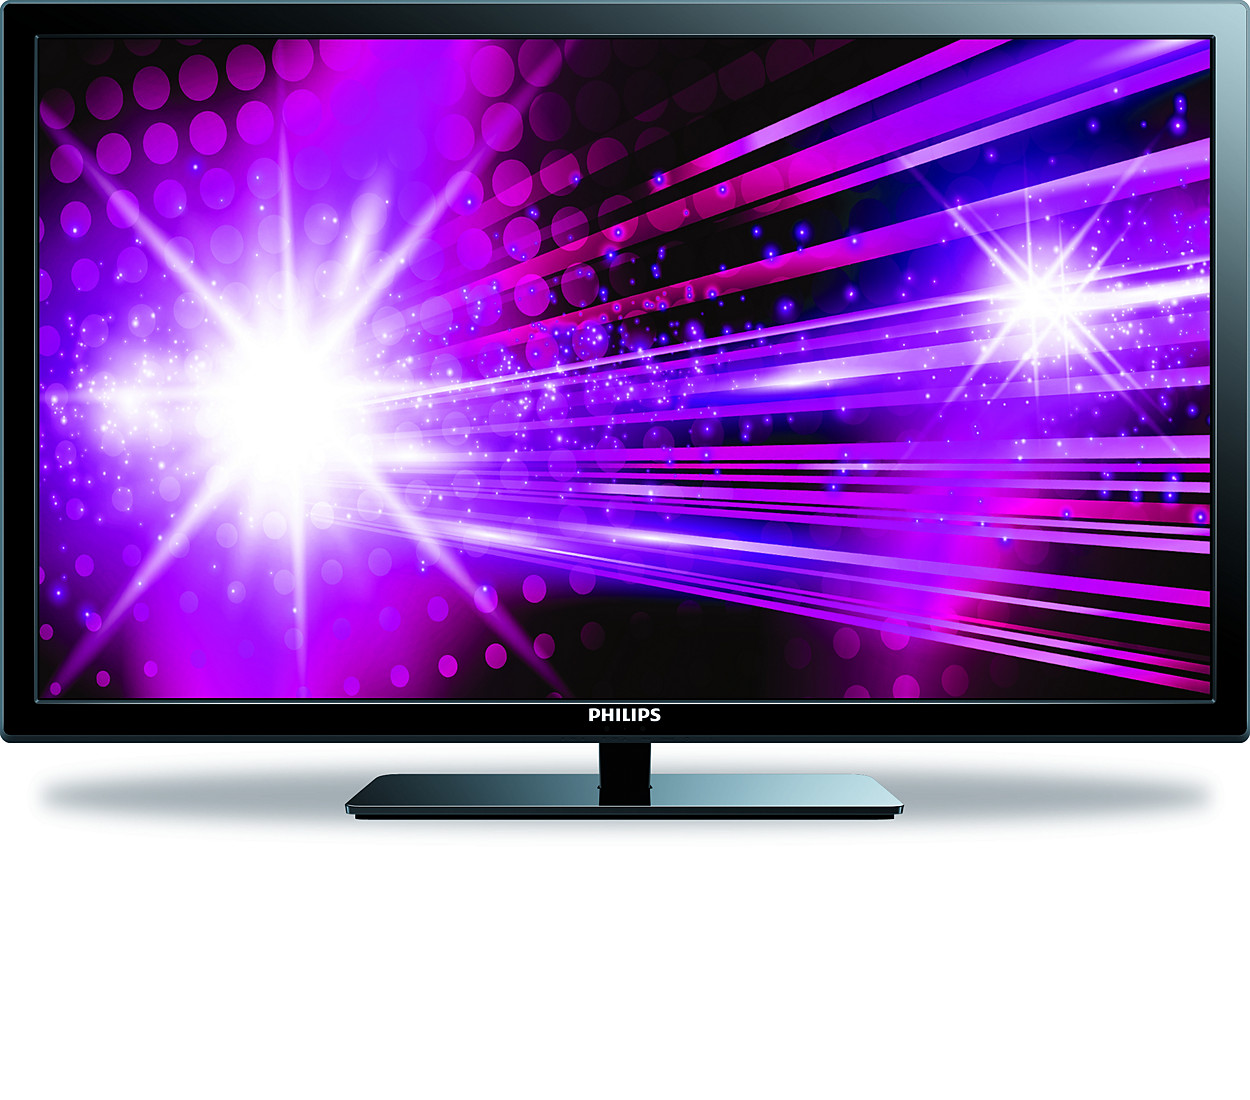 Buy the Philips 2000 series LED-LCD TV 39PFL2708/F7